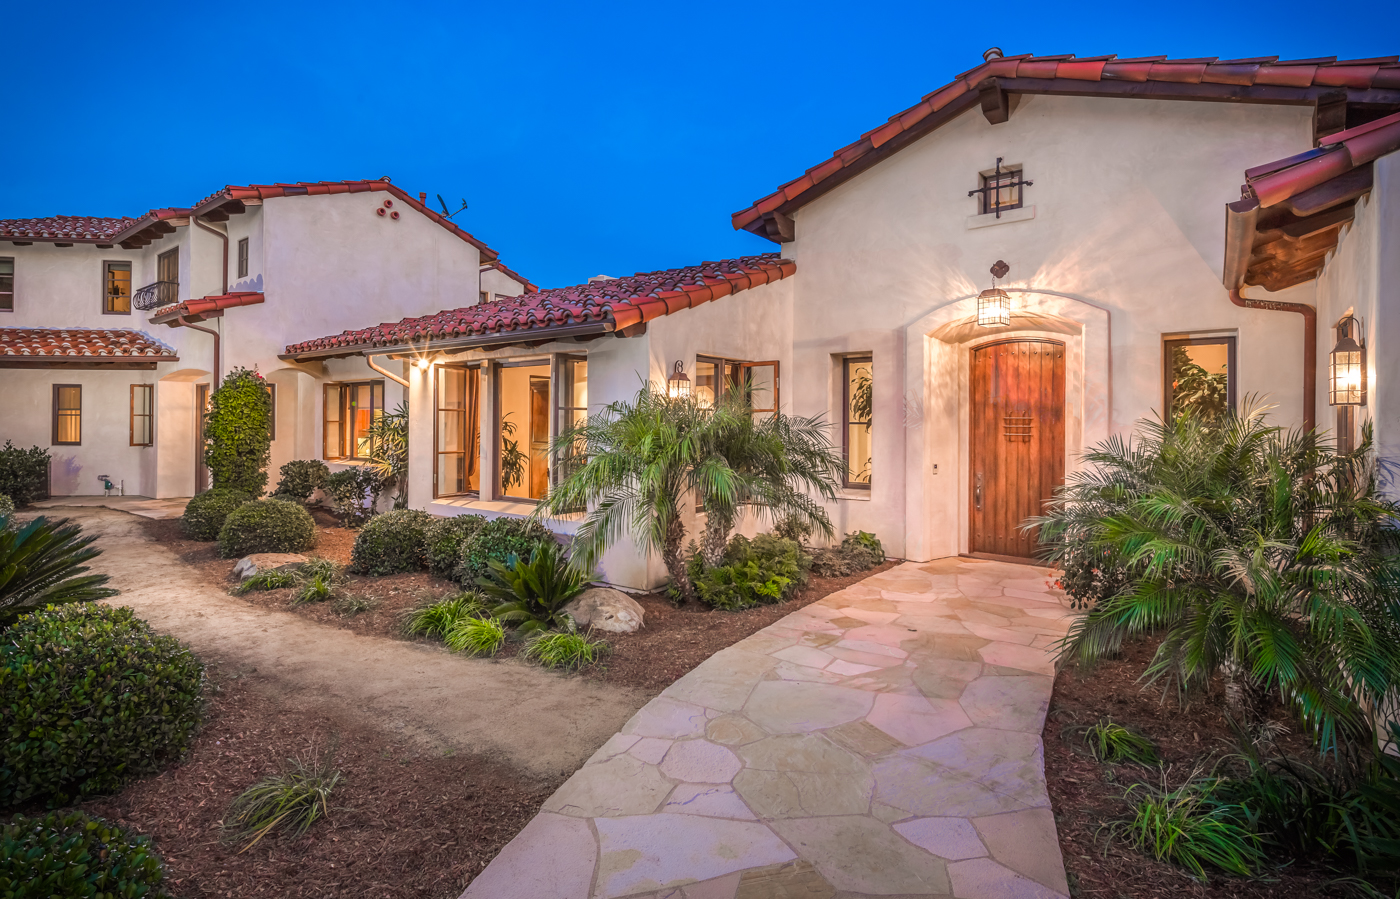 Sold 2018 Represented Buyer & Seller -  Rancho Santa Fe, CA 92067